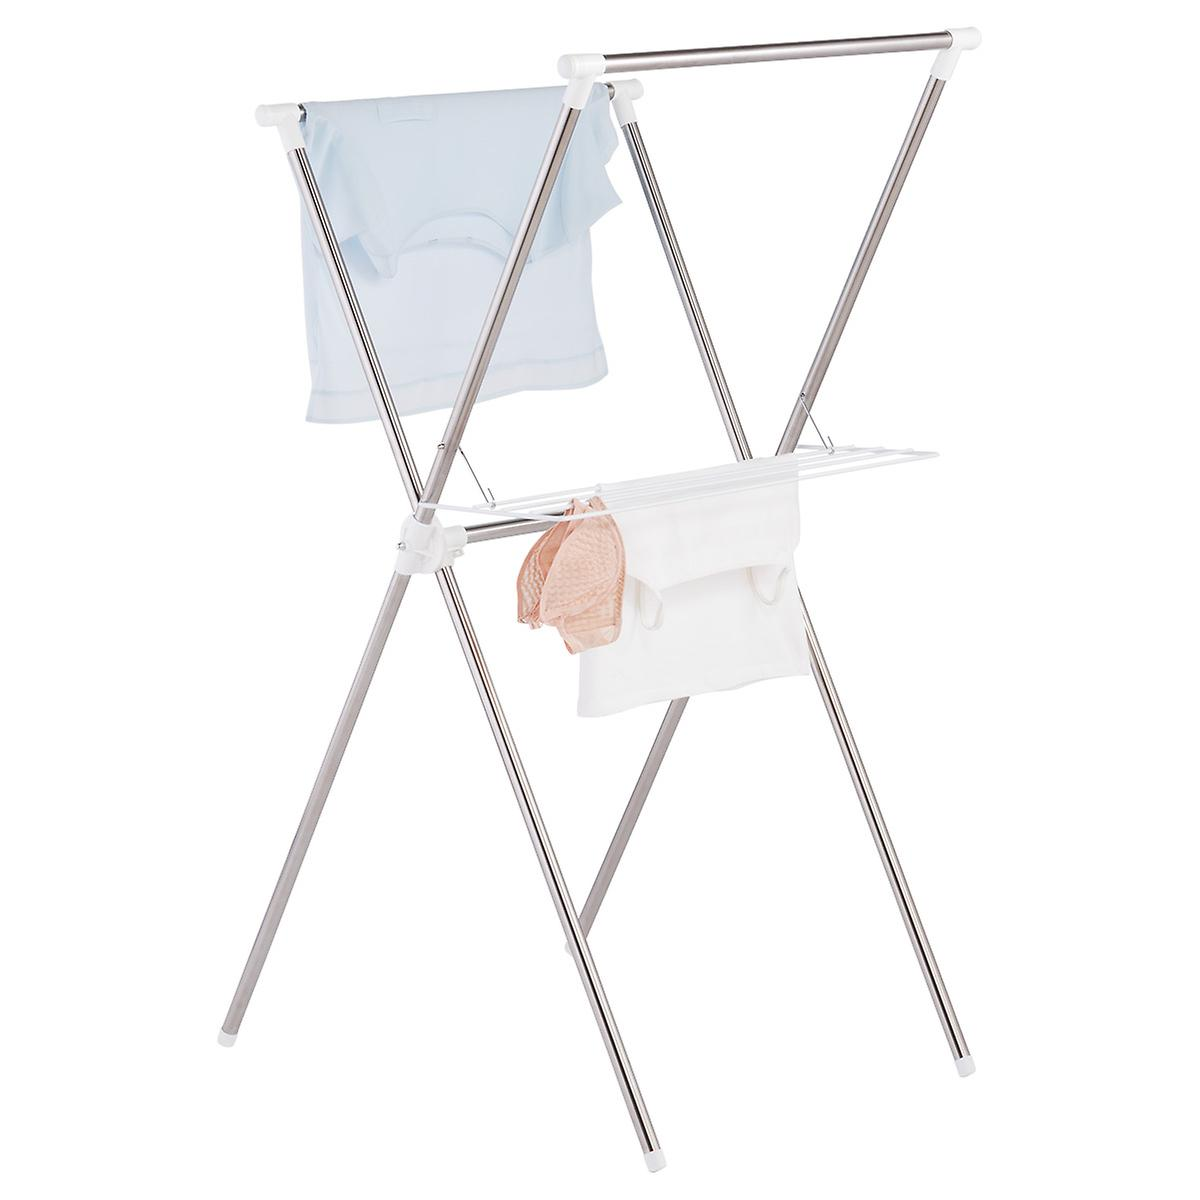 Iris Stainless Steel Folding X Frame Clothes Drying Rack The